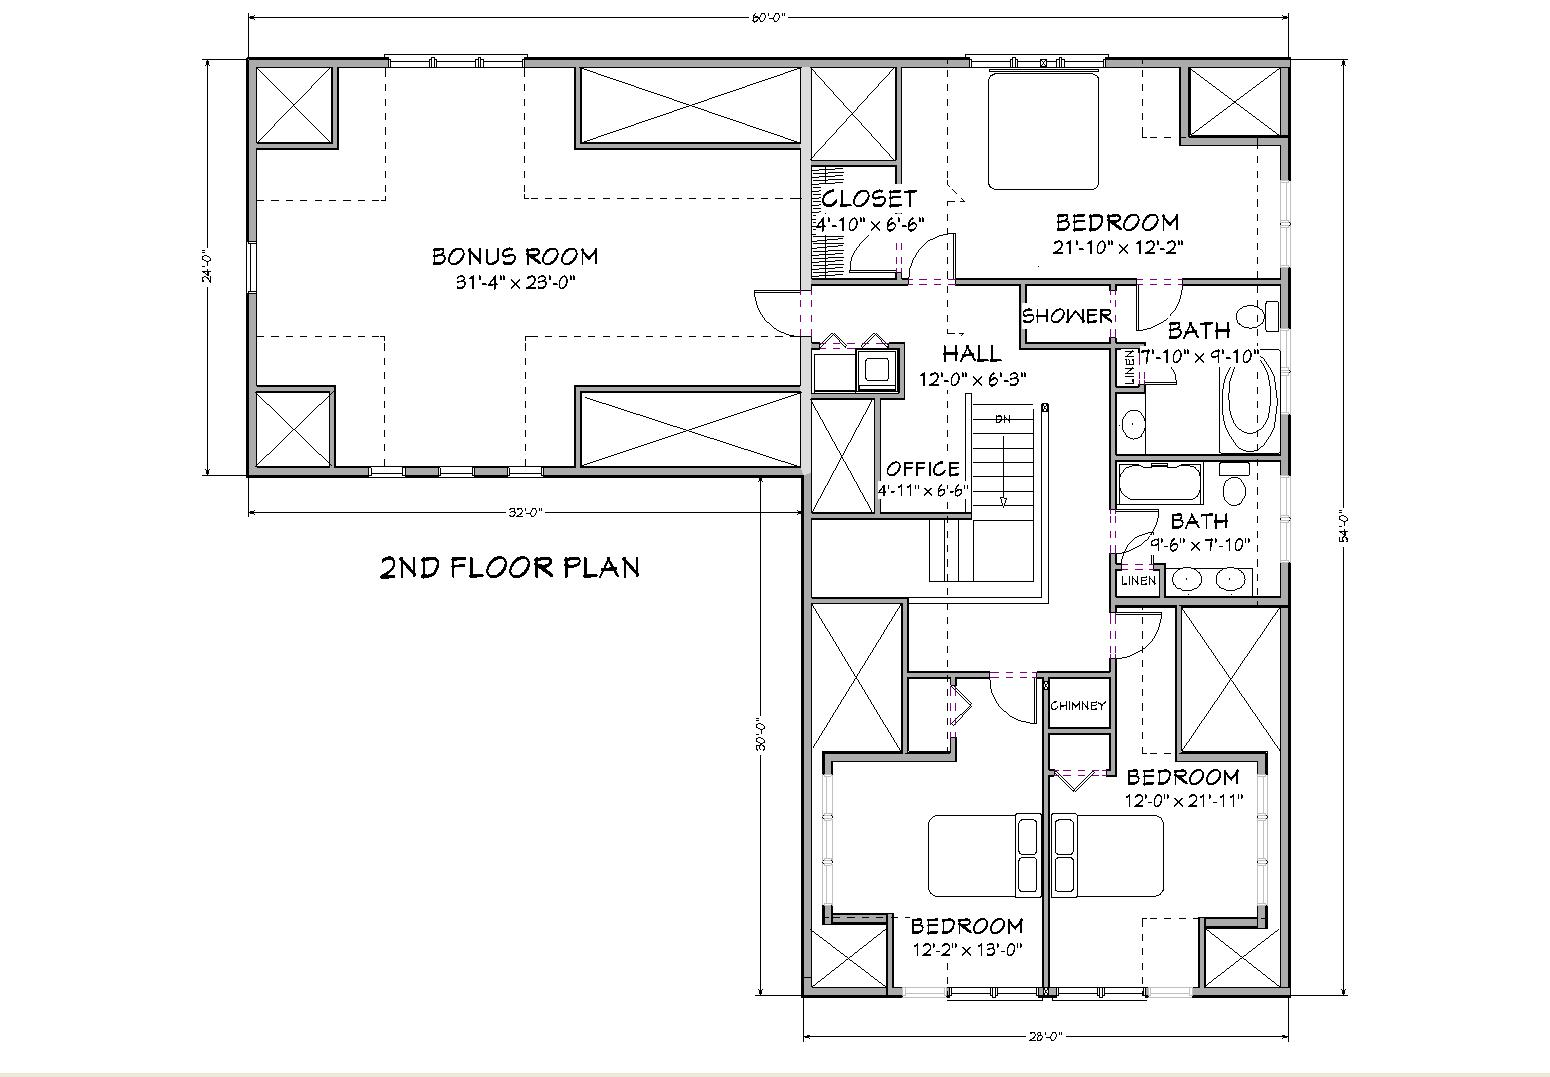 12000 Sq Ft House Plans http://www.thehouseplansite.com/2008/12/cape-cod-plan-d64-3311/